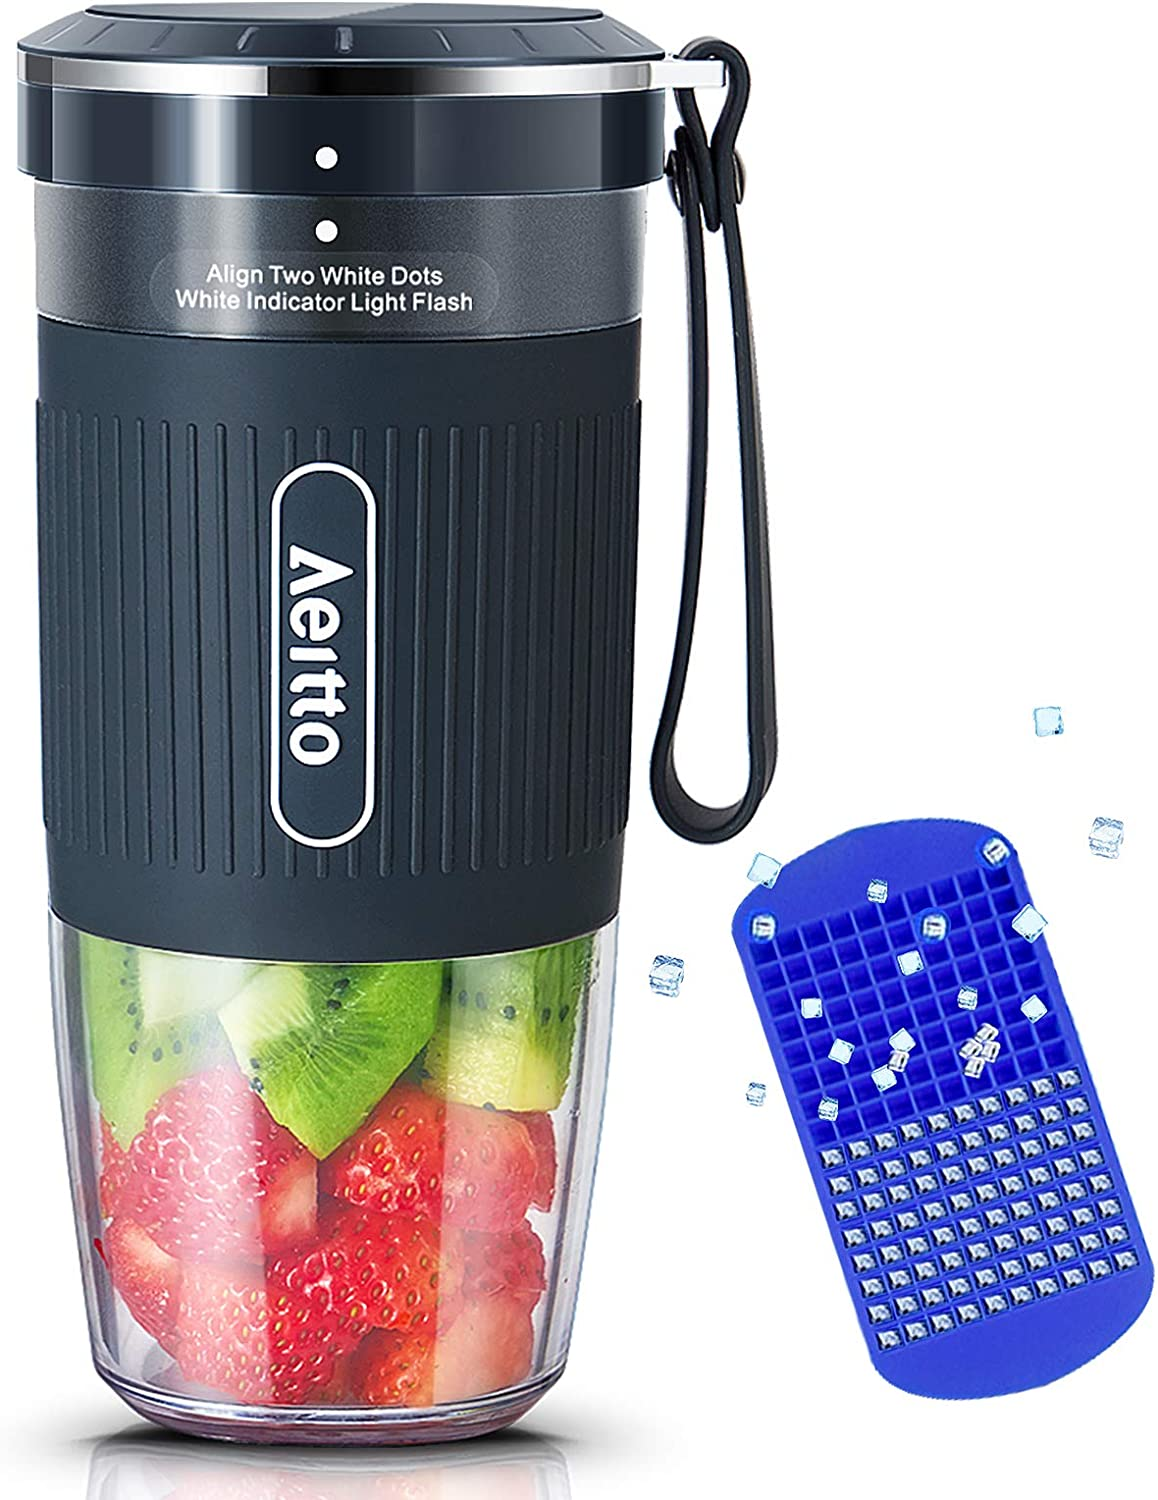 Portable Blender, Cordless Personal Blender Juicer, Mini Mixer, Smoothies Maker Fruit Blender Cup With USB Rechargeable, 10oz/300ml for Home, Office, Sports, Travel, Outdoors, by Aeitto, Dark Grey